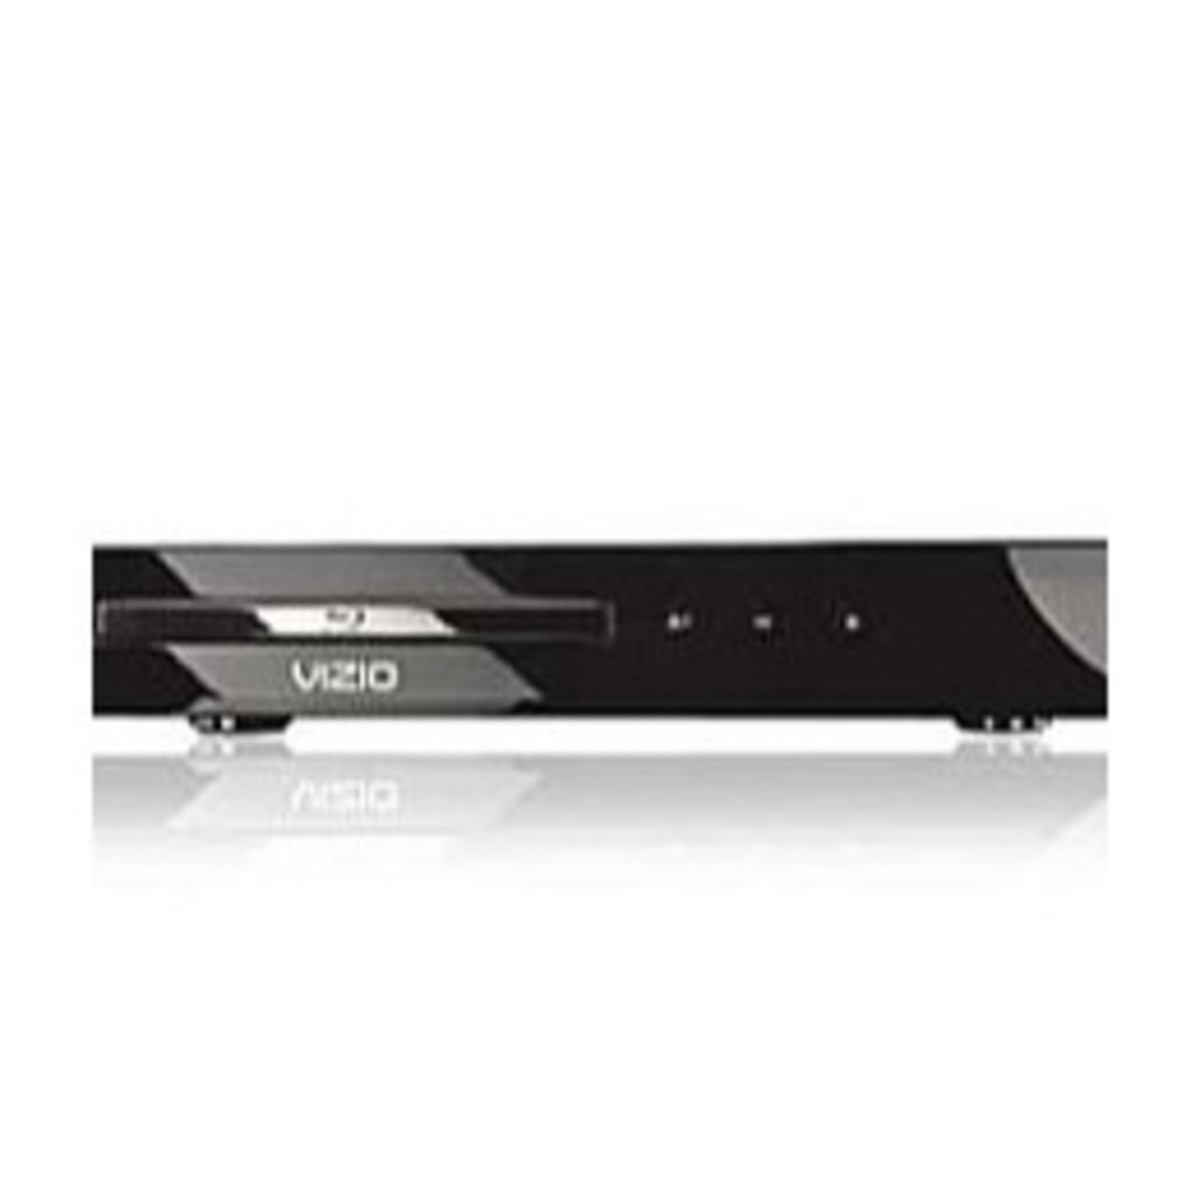 The Vizio VBR122 Blu-ray player supports CD, MP3 and WMA audio playback.